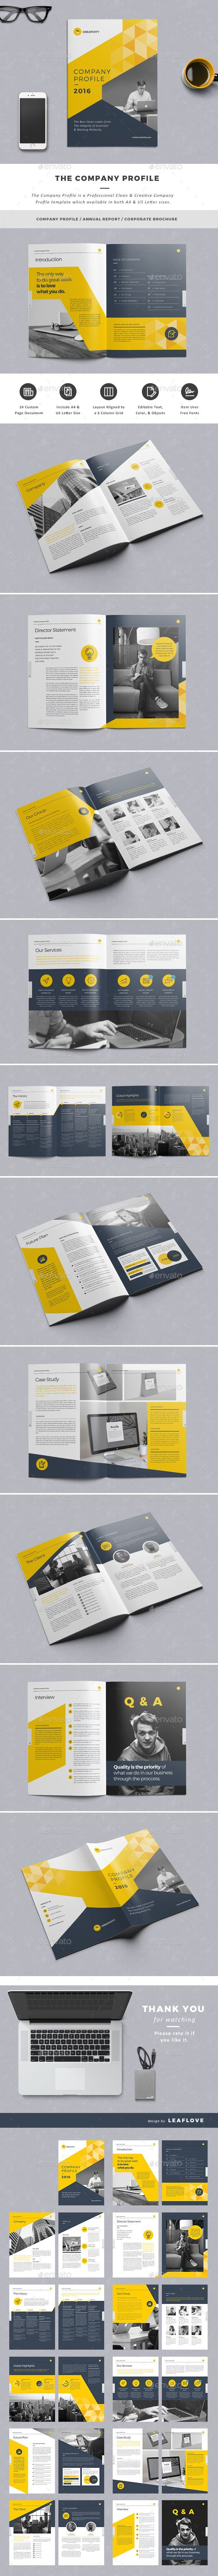 The Company Profile Brochure Template InDesign INDD #design Download: http://graphicriver.net/item/the-company-profile/14207058?ref=ksioks: